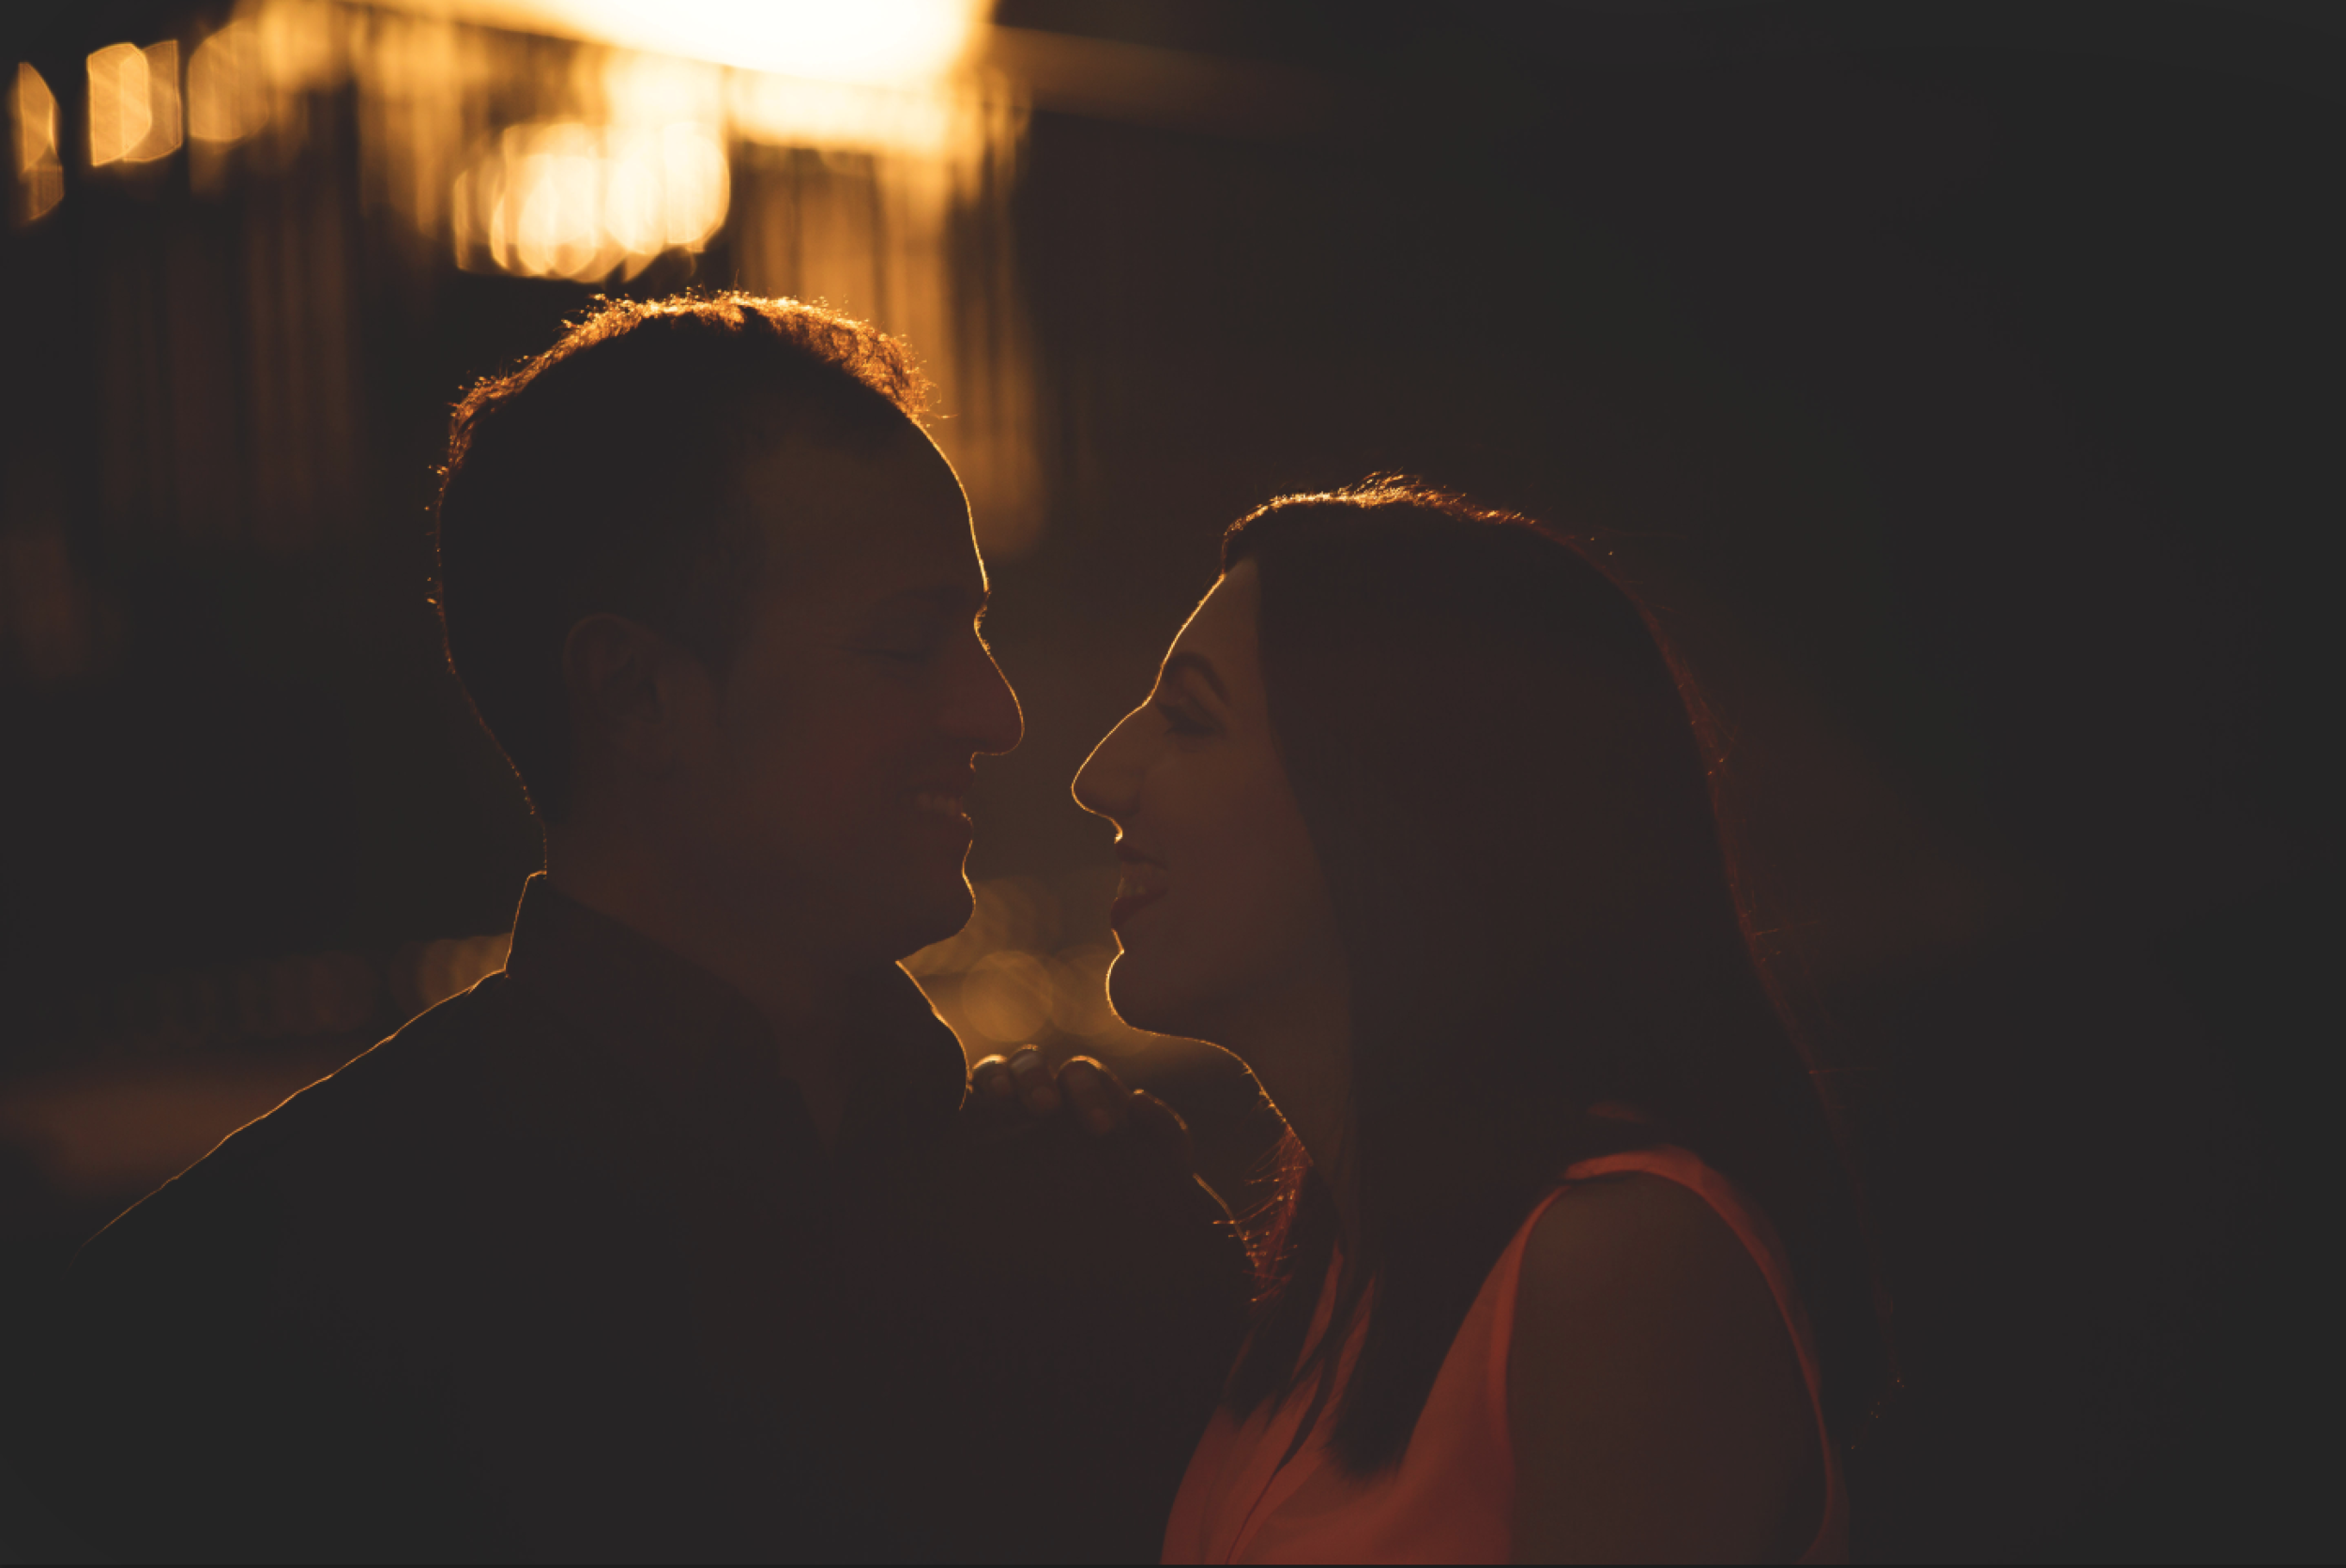 Hamilton-Engagement-Photographer-HamOnt-Engaged-Photography-Moments-by-Lauren-Wedding-Downtown-Ring-Toronto-GTA-Niagara-Oakville-Burlington-Modern-Photo-Image-5.png